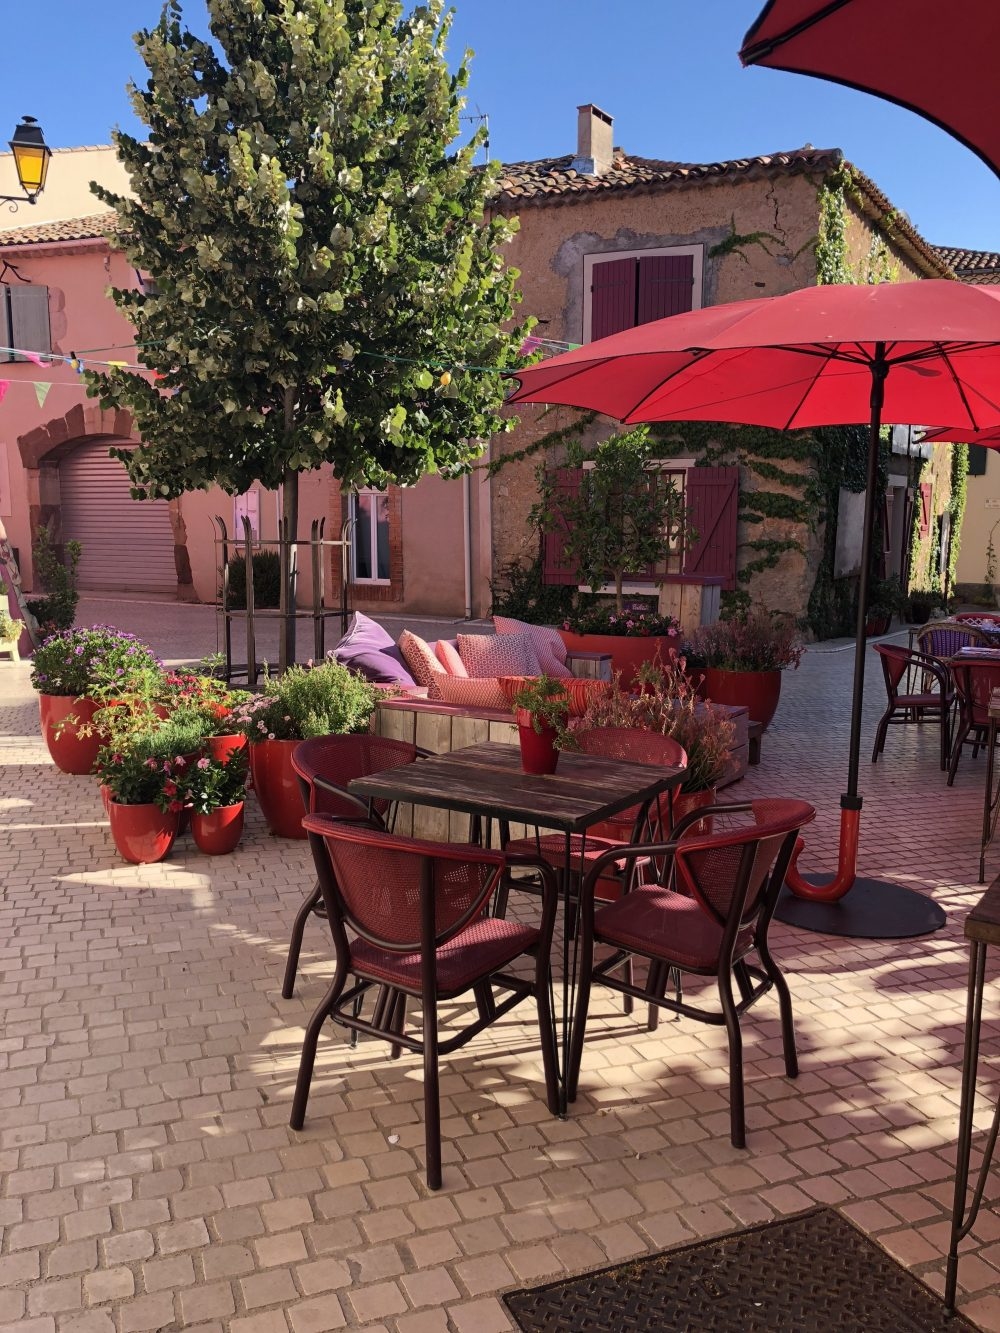 patio with a red umbrella between pink buildings